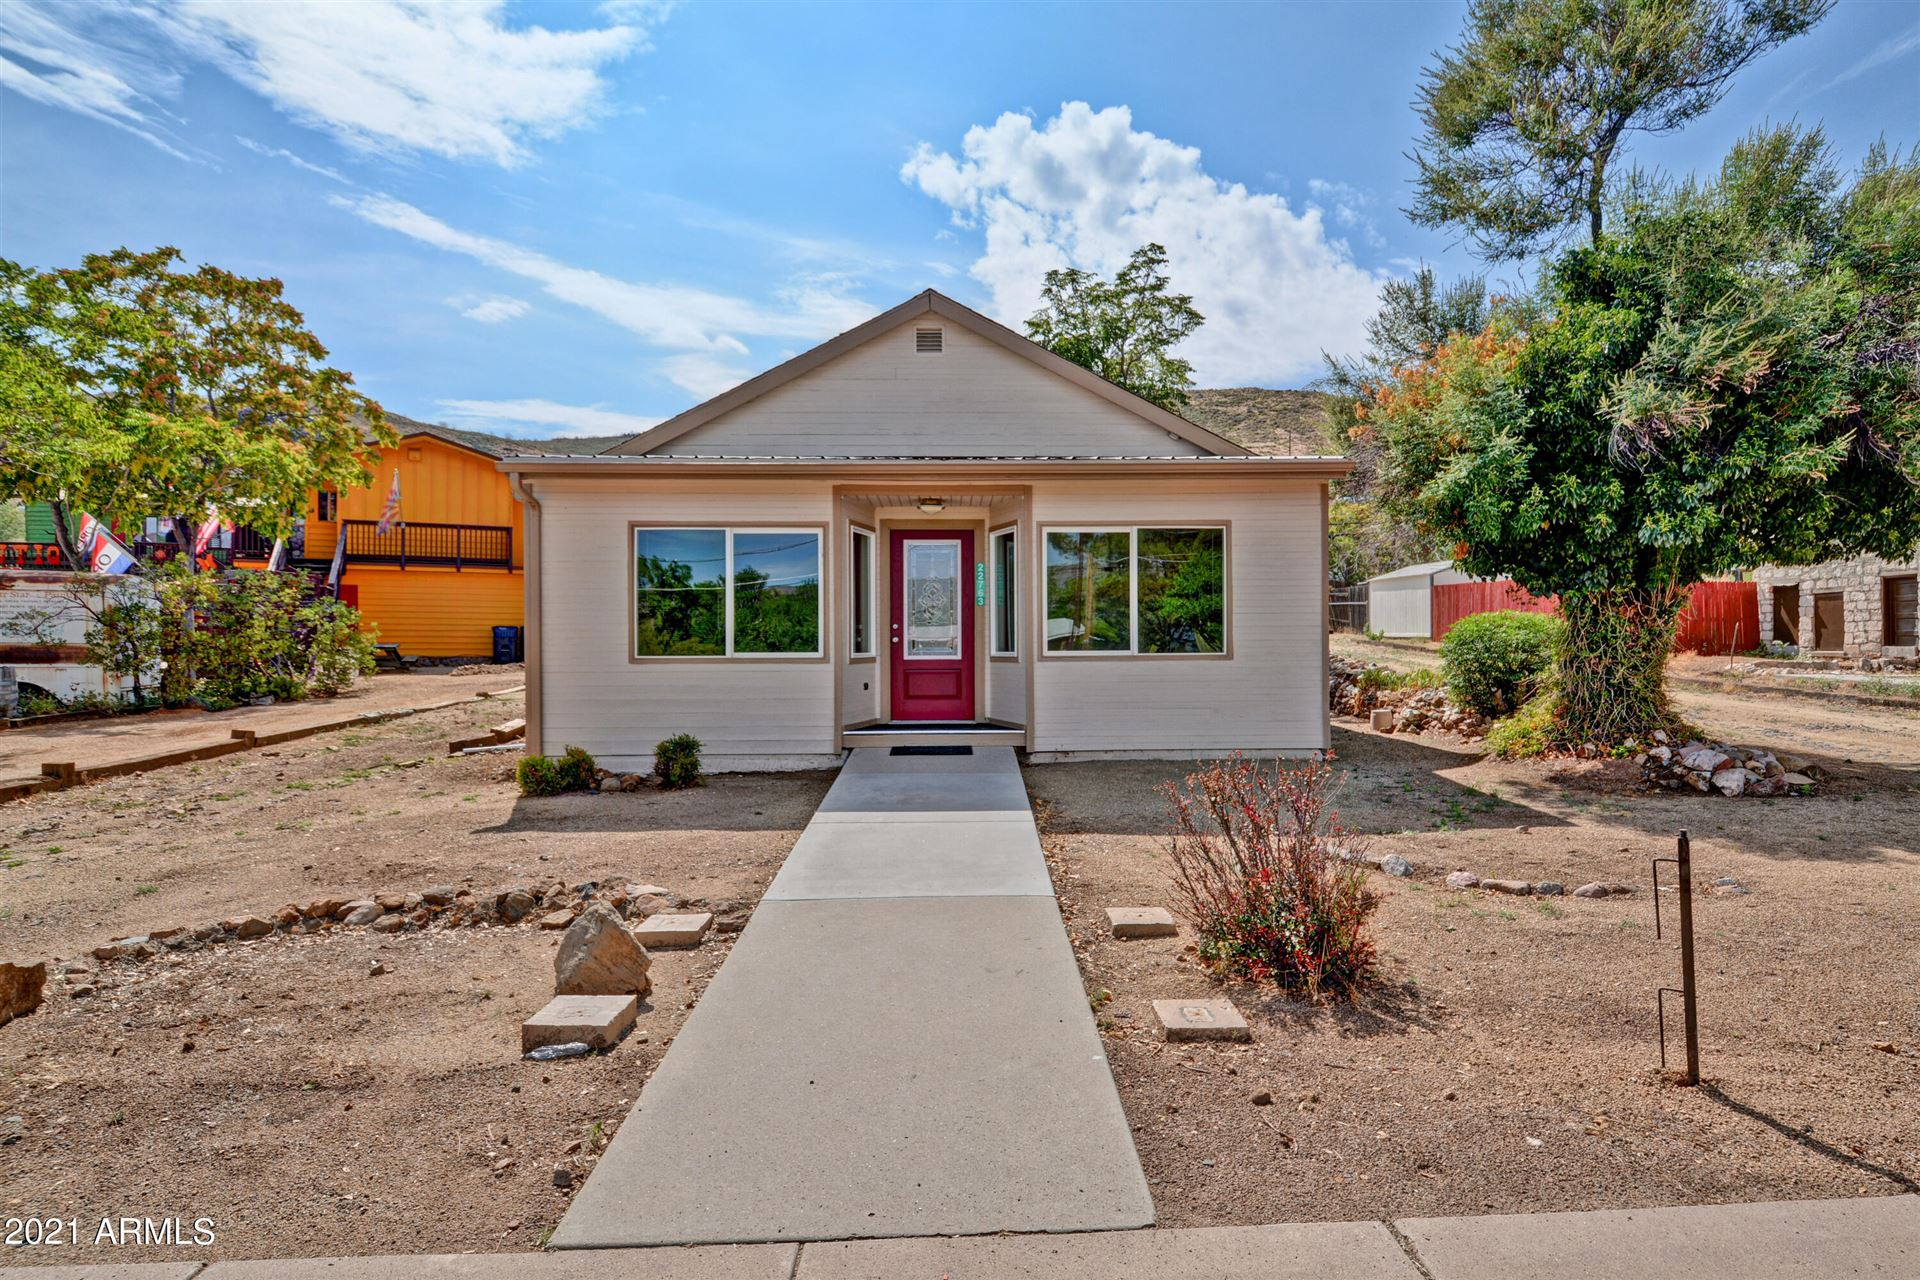 22763 S STATE ROUTE 89 --, Yarnell, AZ 85362 - MLS#: 6268000